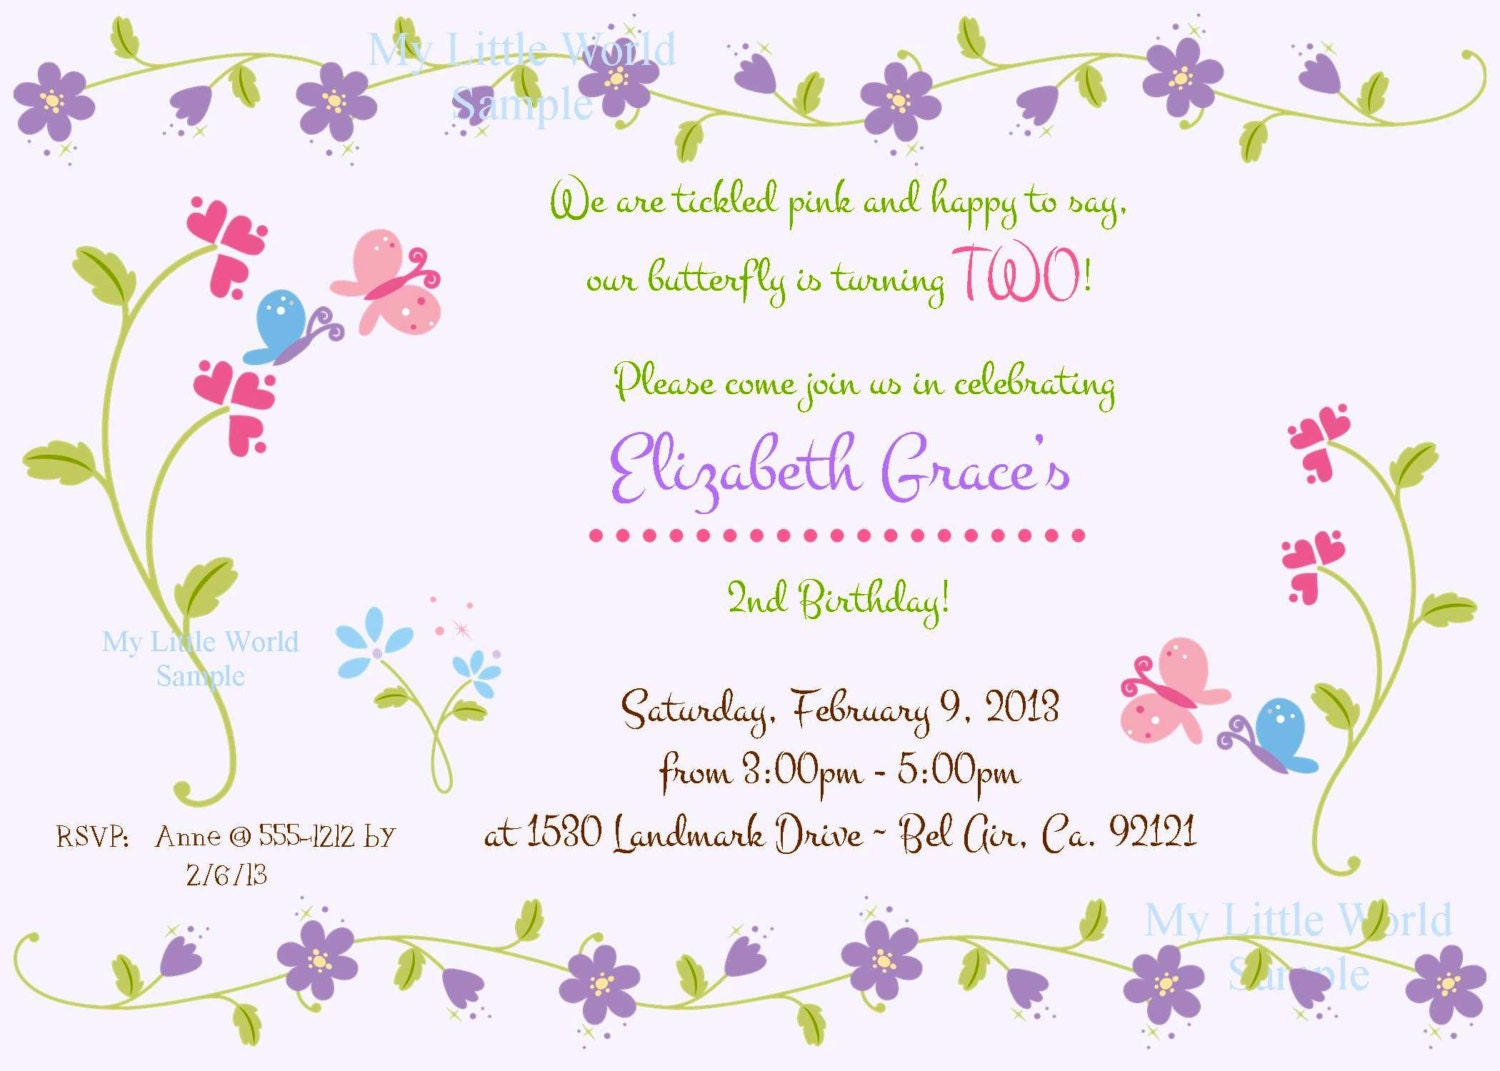 Butterfly Party Invitations is luxury invitation design